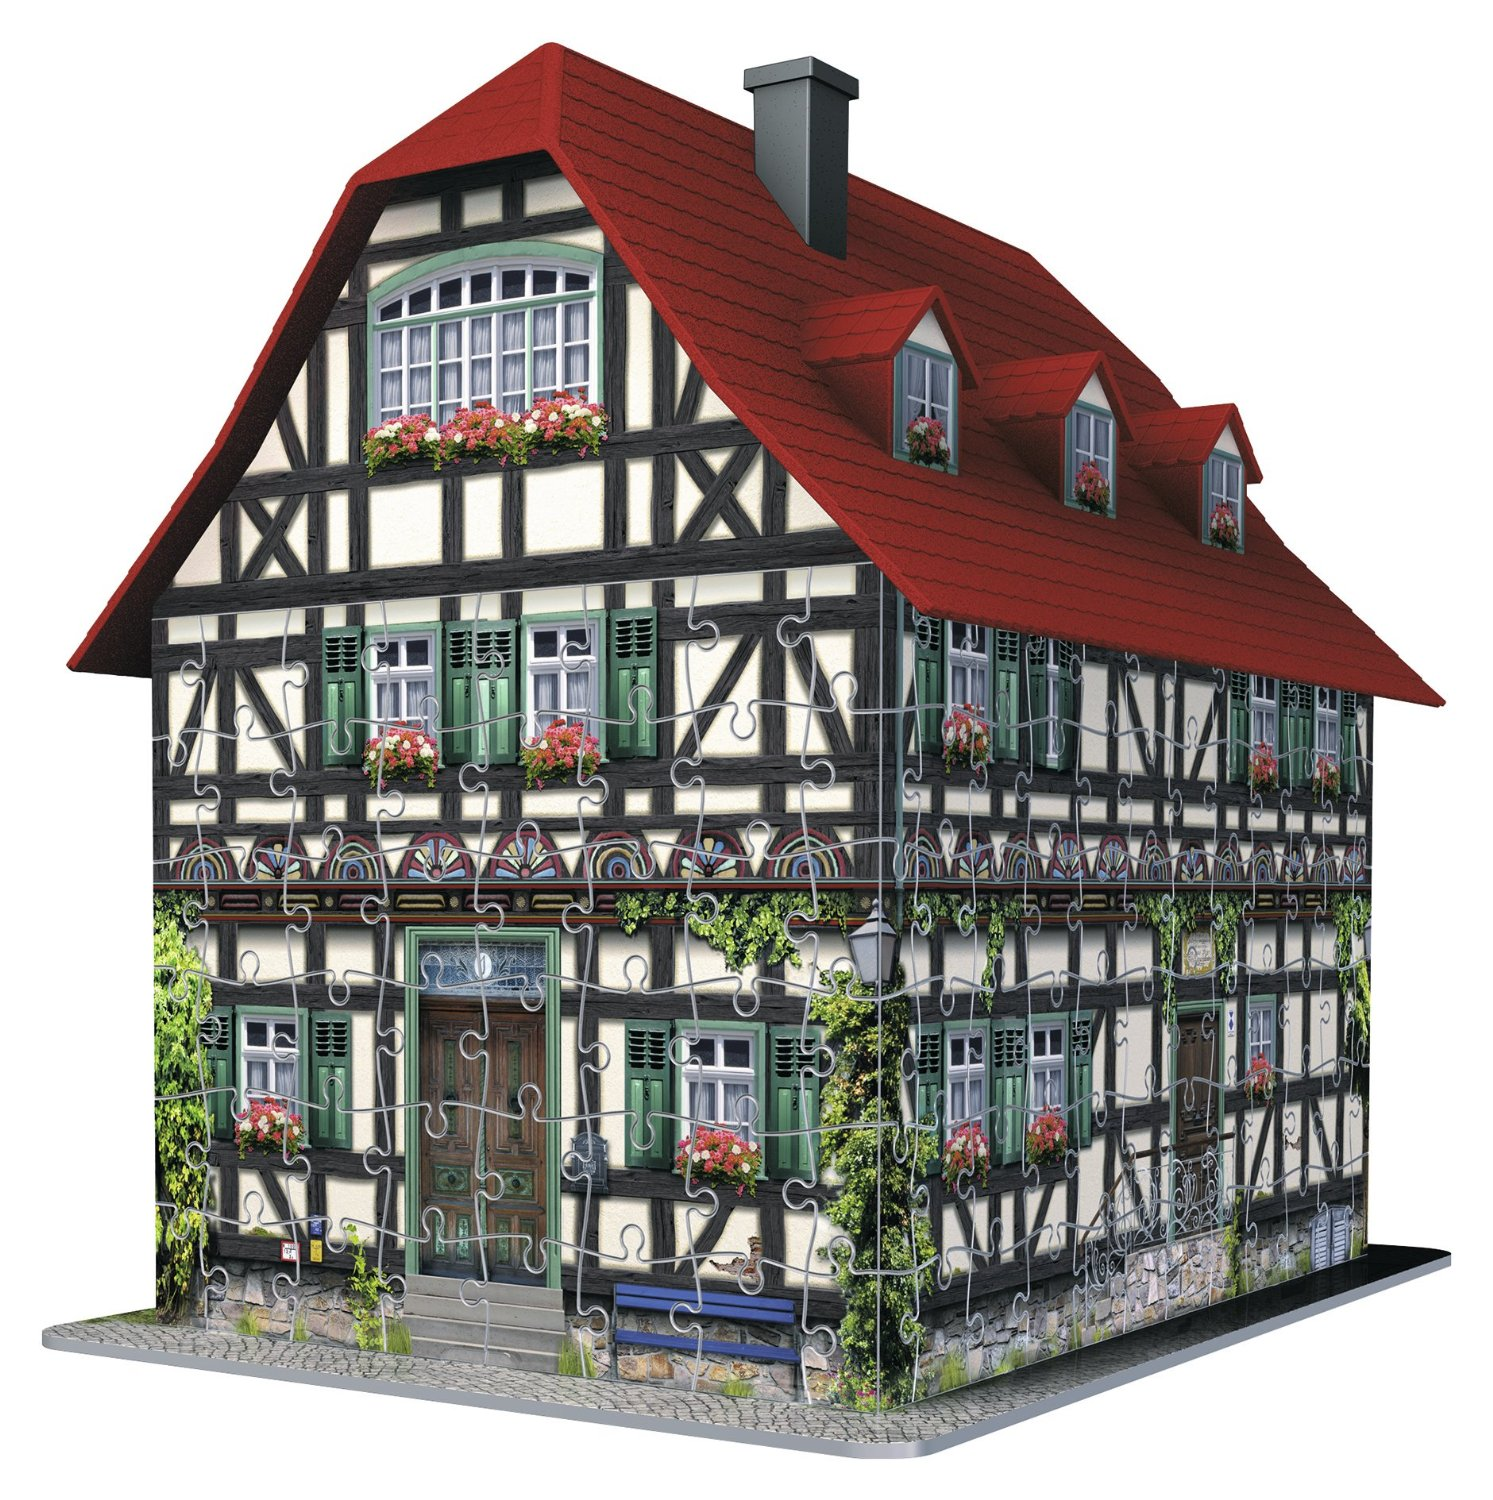 puzzle 3d maison m di vale ravensburger 12572 216 pi ces puzzles cottages et ch lets. Black Bedroom Furniture Sets. Home Design Ideas